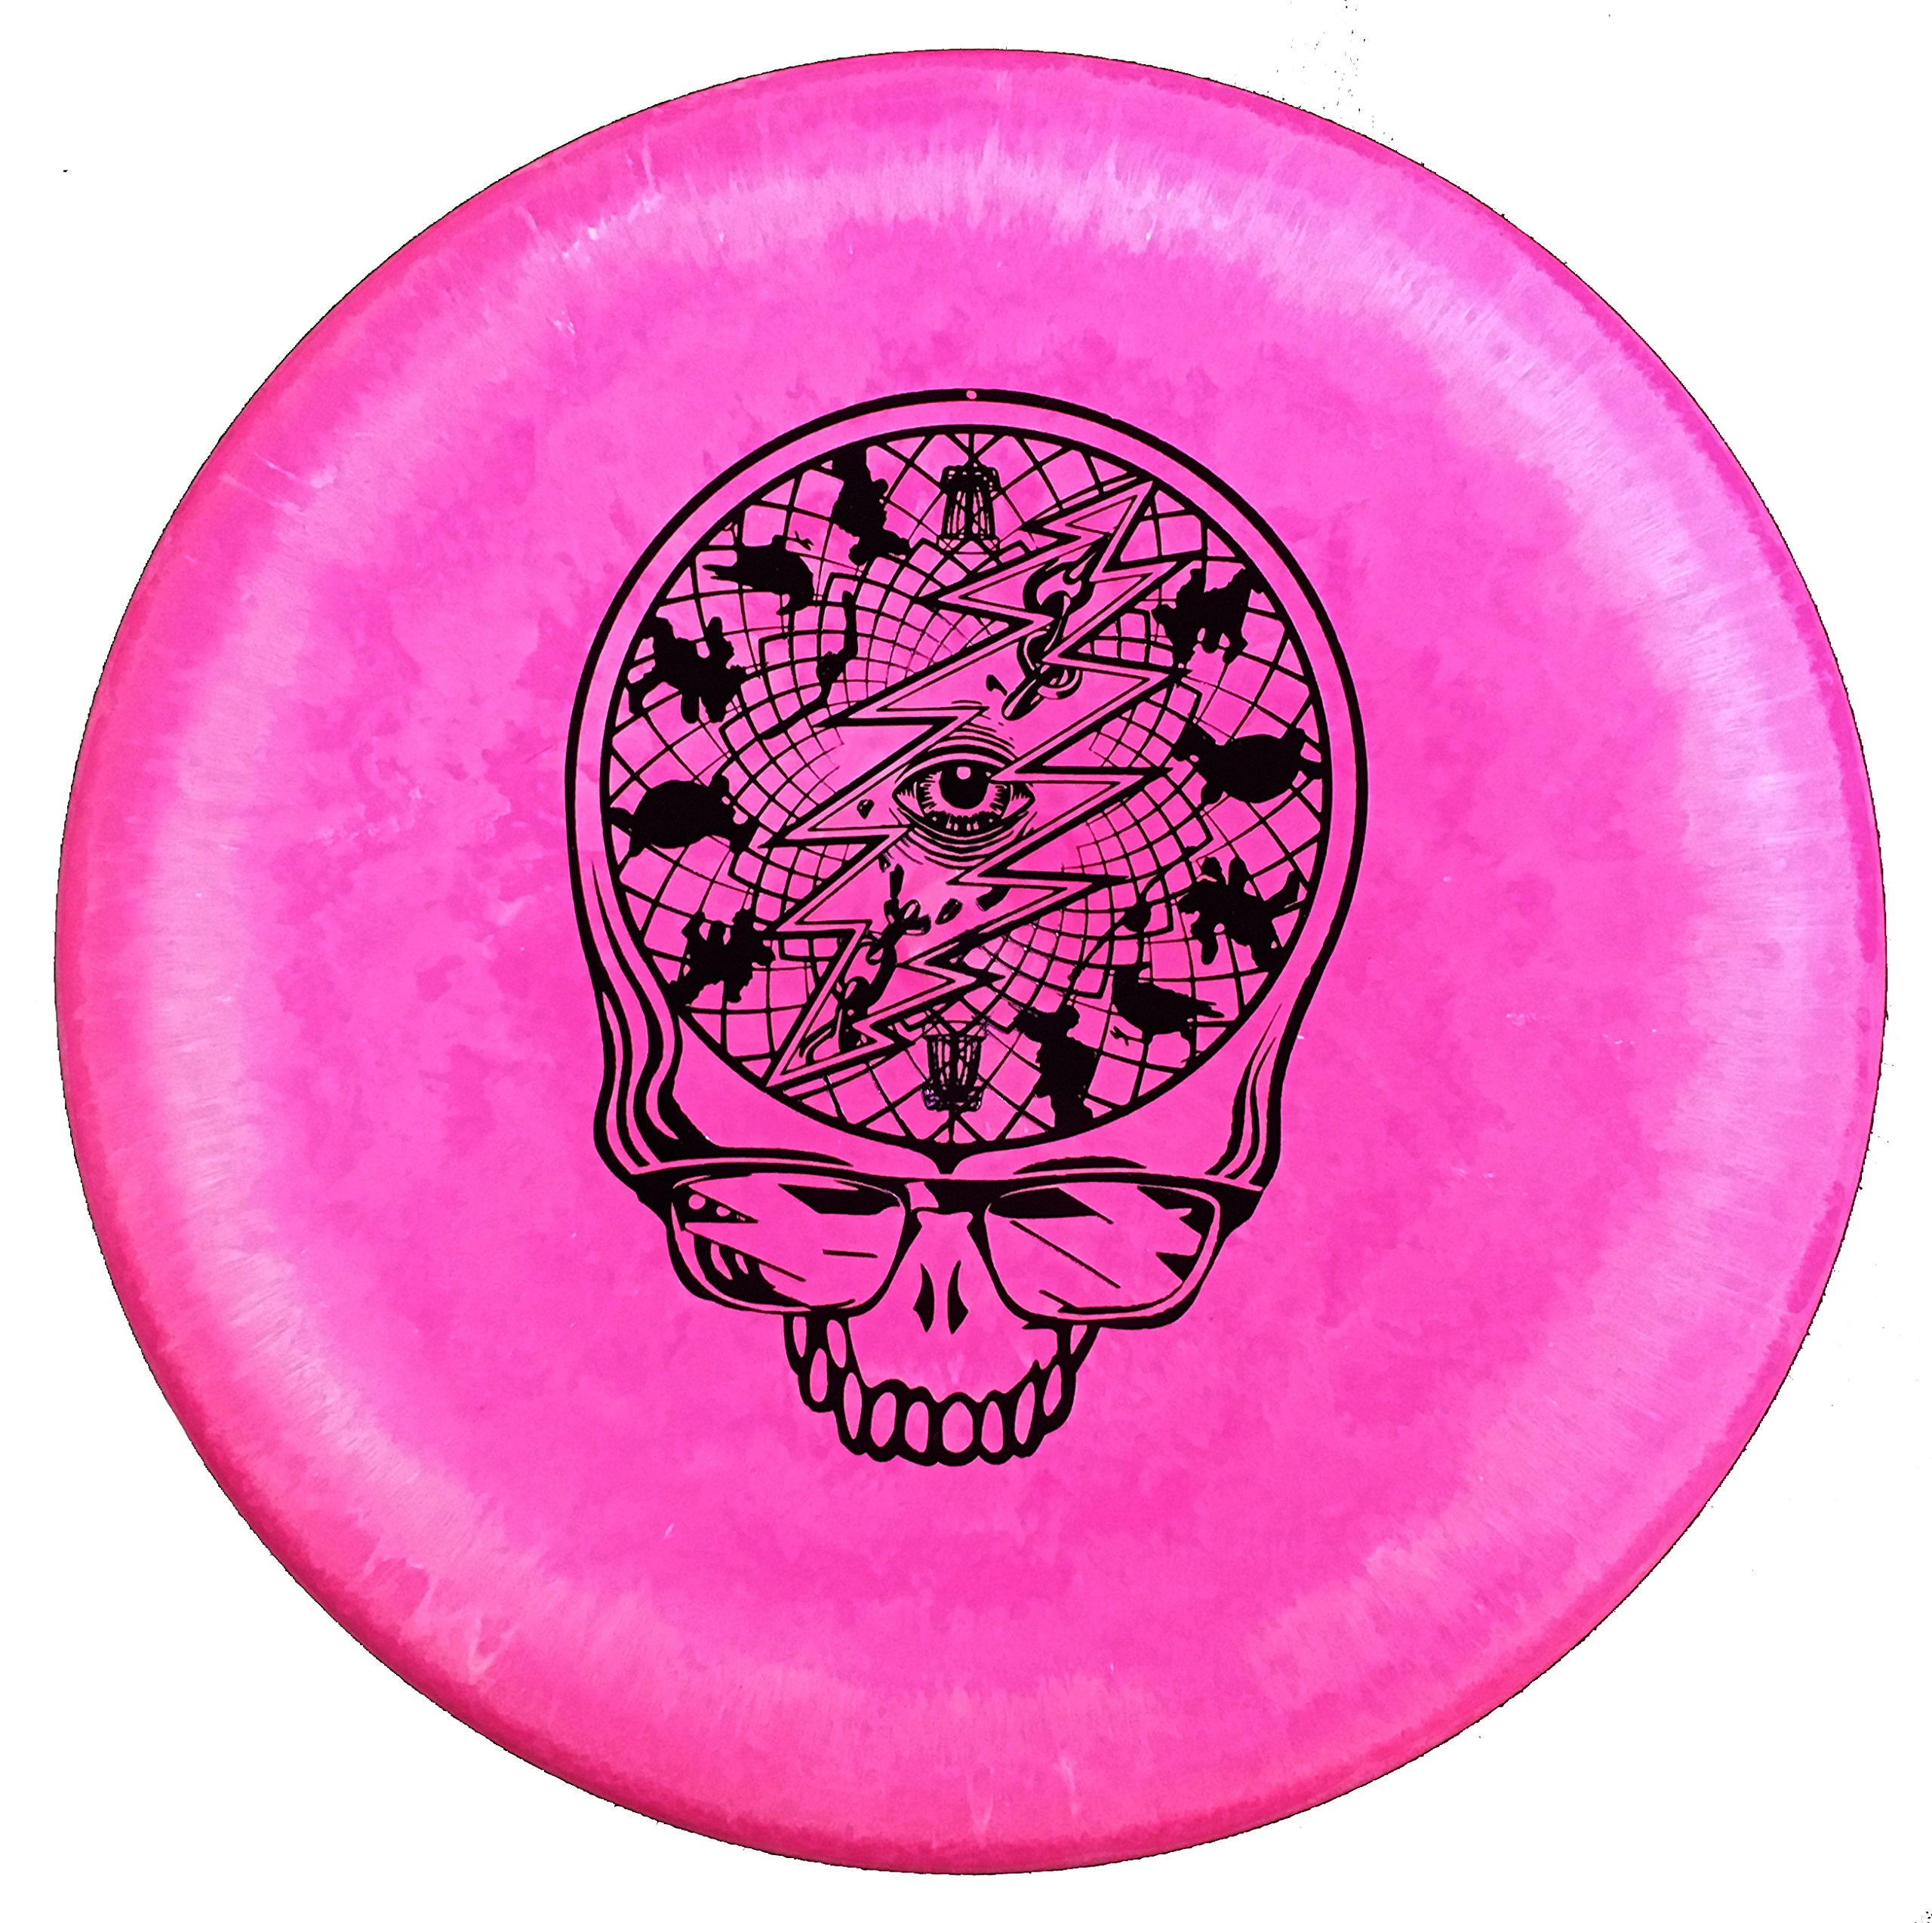 Gateway Band Stamp Wizard Disc Golf Putter by Gateway